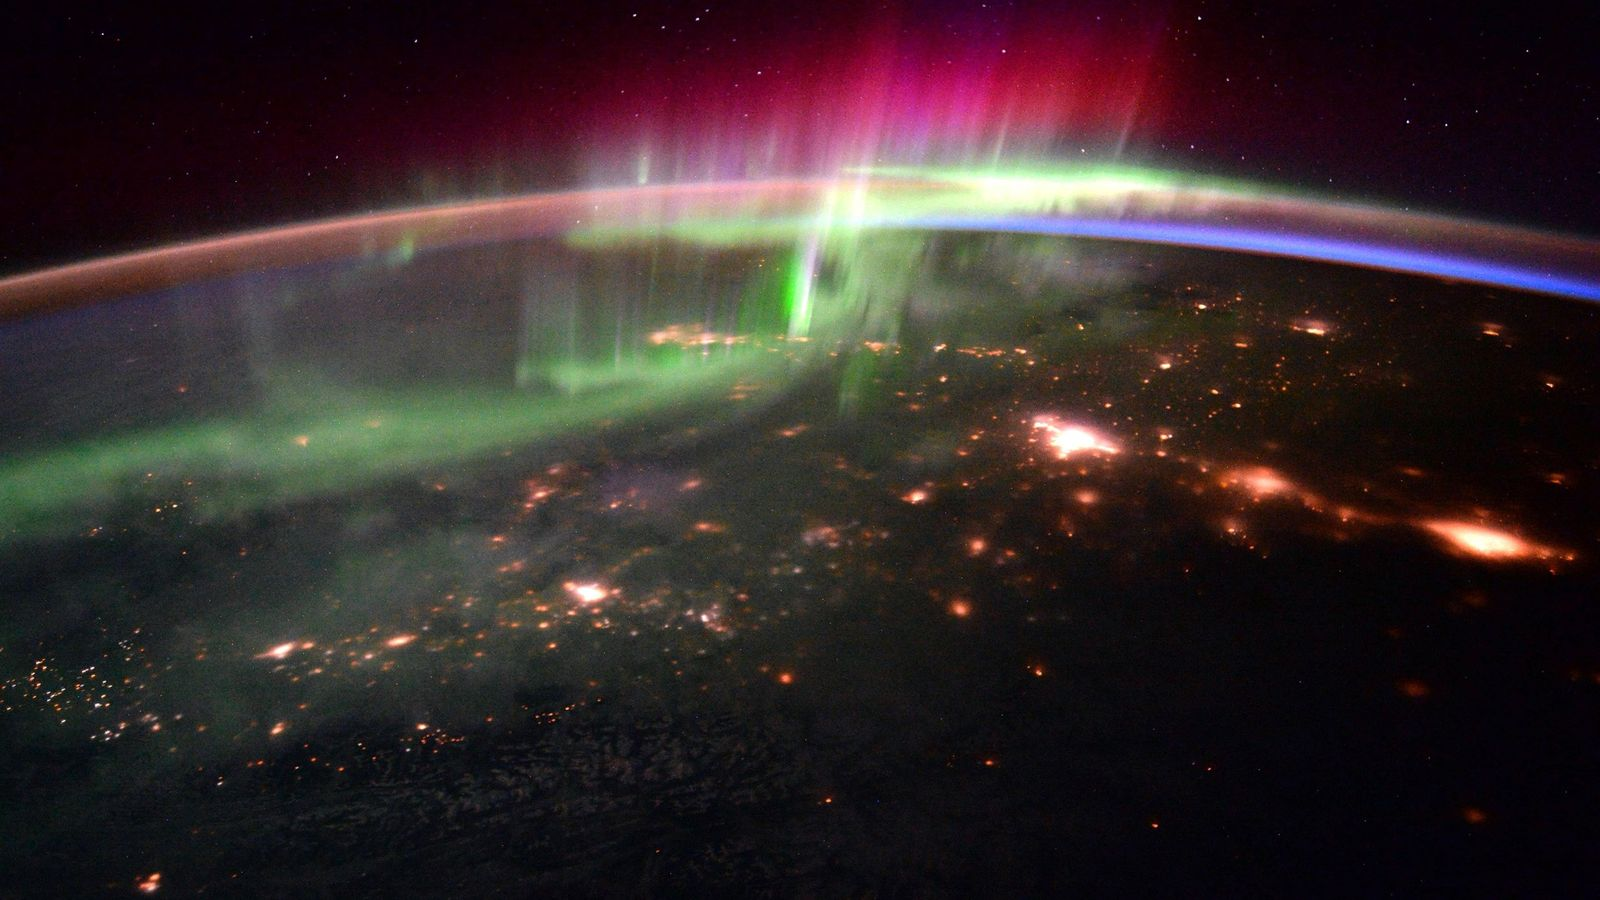 The interaction of solar wind with our planet's magnetic field produces stunning light shows, like these ...